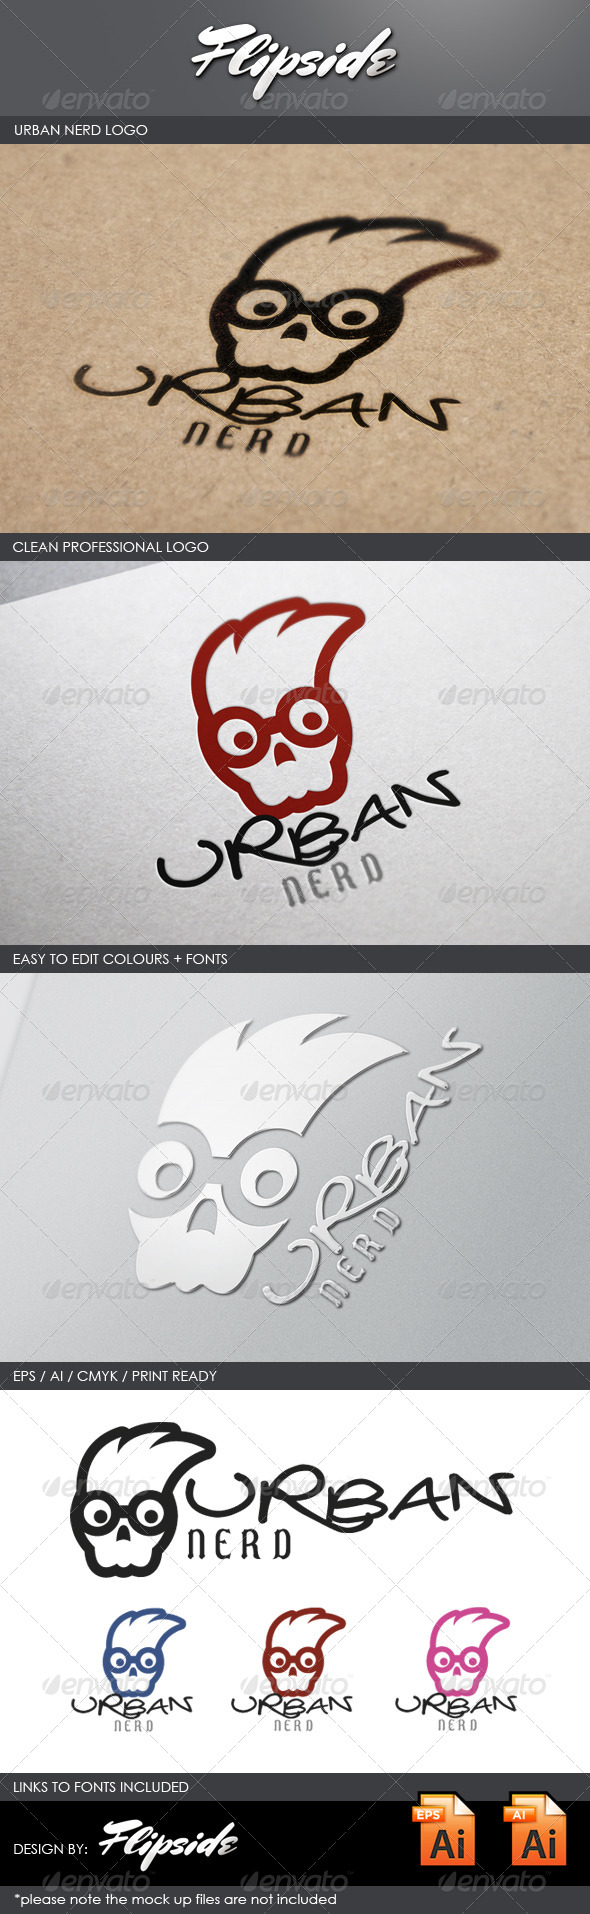 GraphicRiver Urban Nerd Logo 4340561